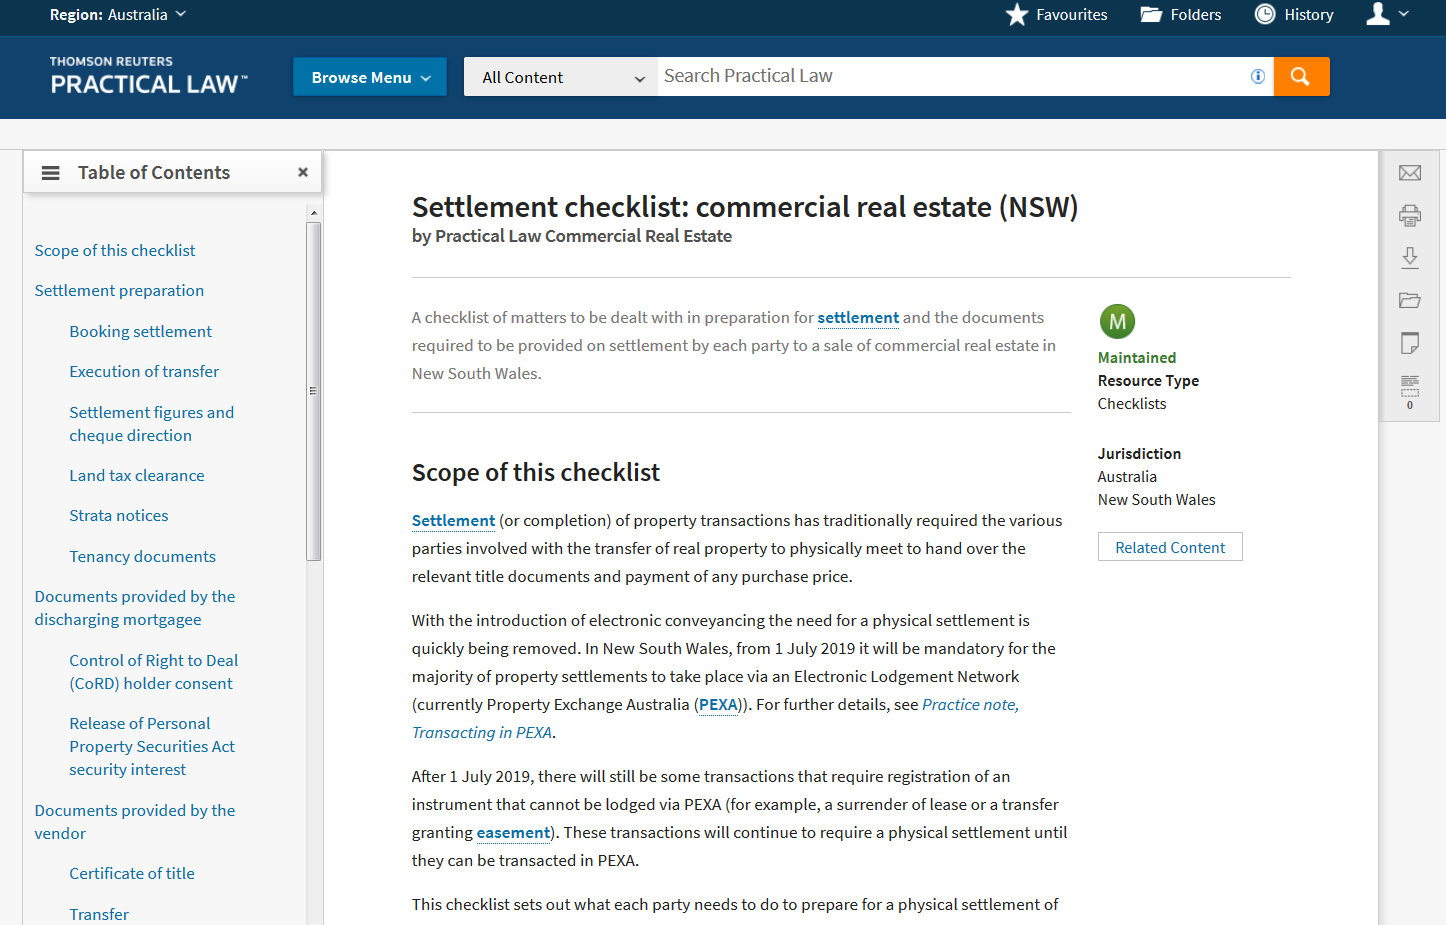 Practical Law - Checklist: Settlement checklist: commercial real estate (NSW)